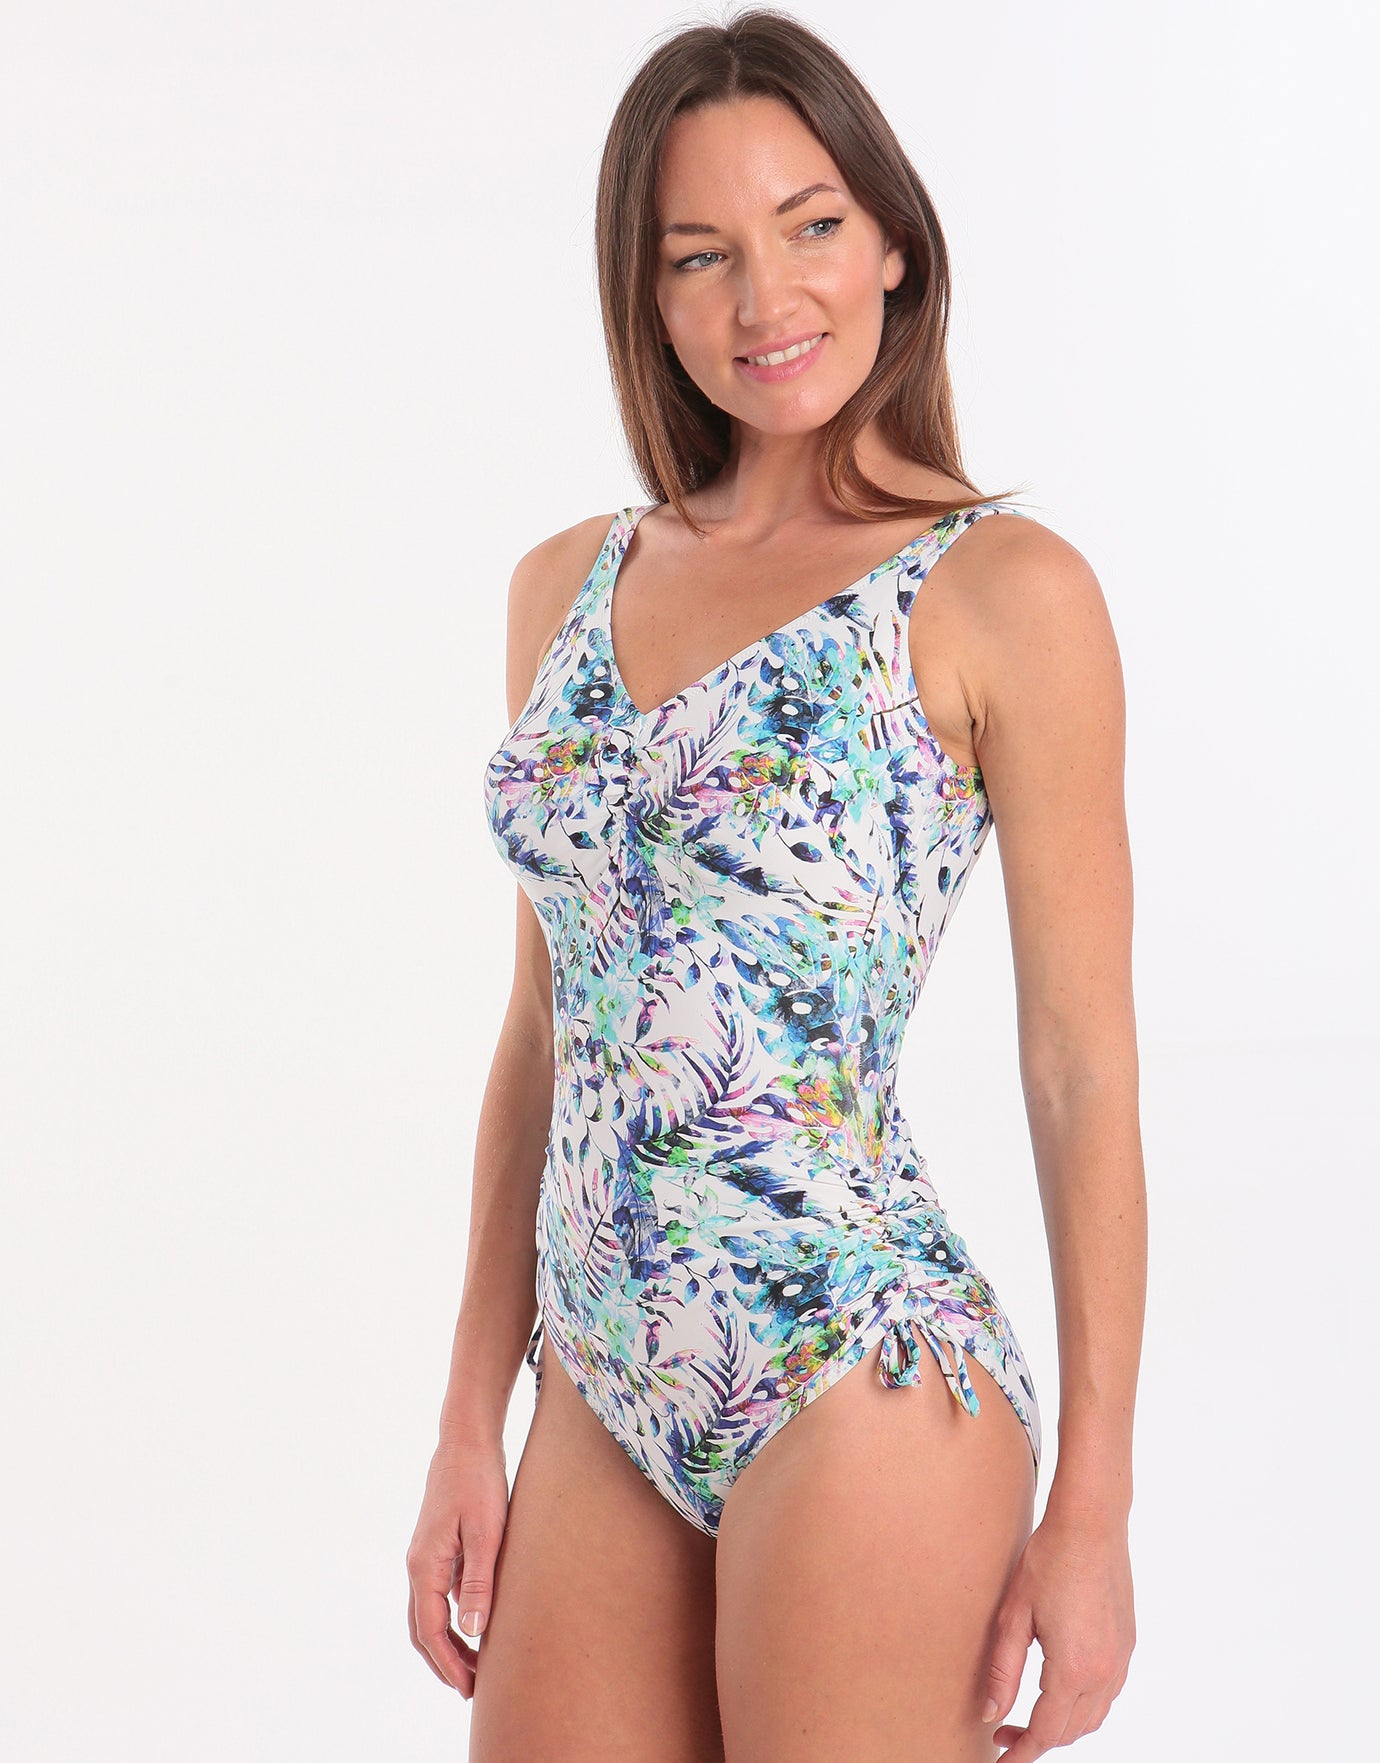 Fantasie Fiji UW V Neck Adjustable Leg Swimsuit - Multi